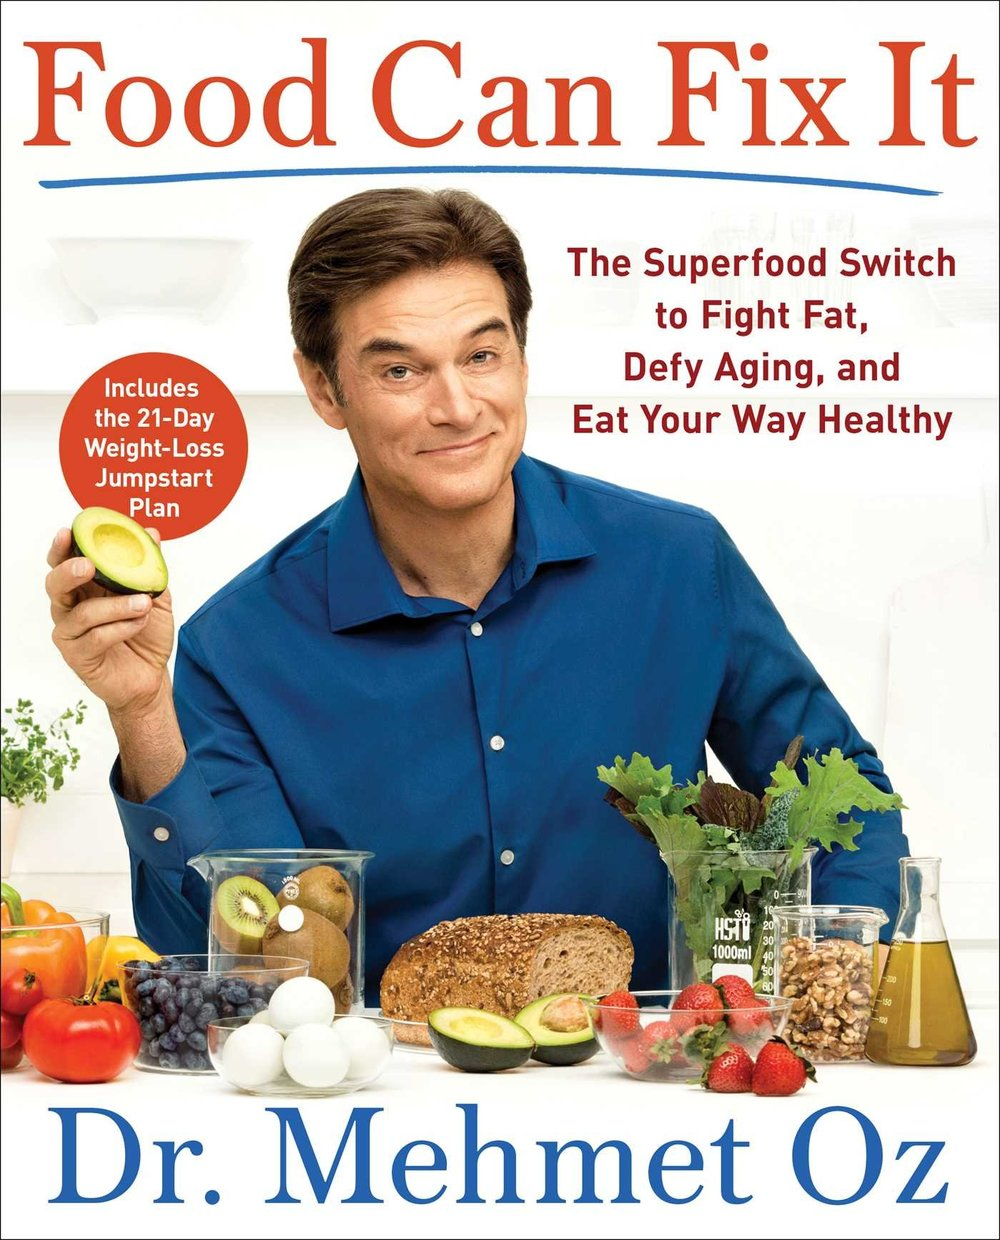 - Not recommended. http://www.wnd.com/2017/10/dr-ozs-food-can-fix-it-fact-or-fiction/